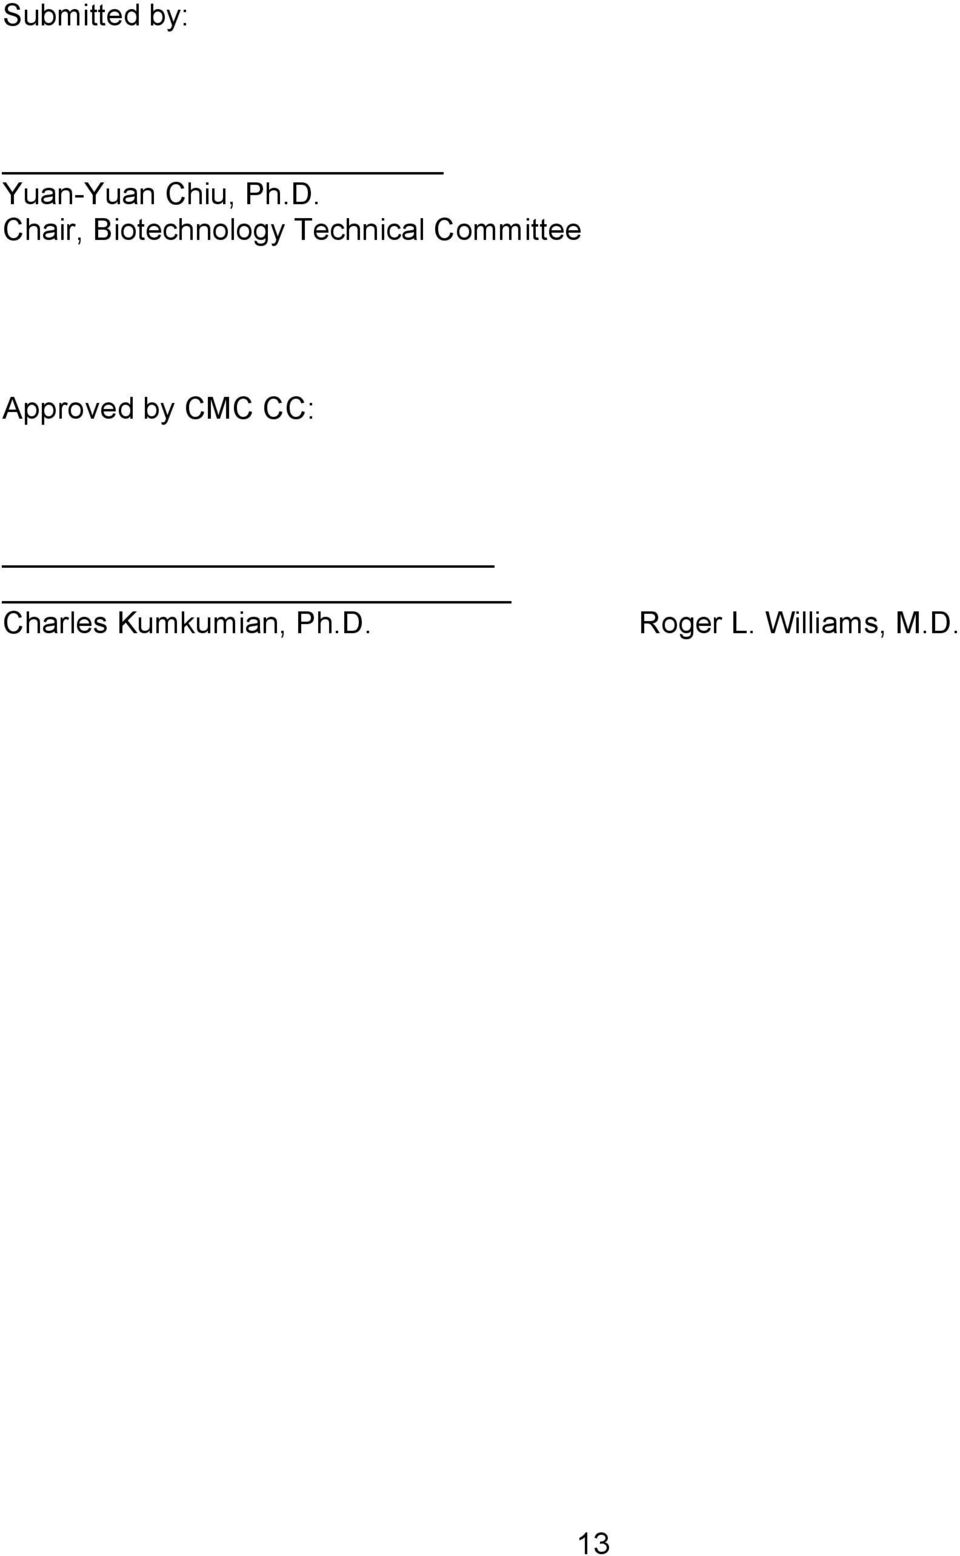 Committee Approved by CMC CC: